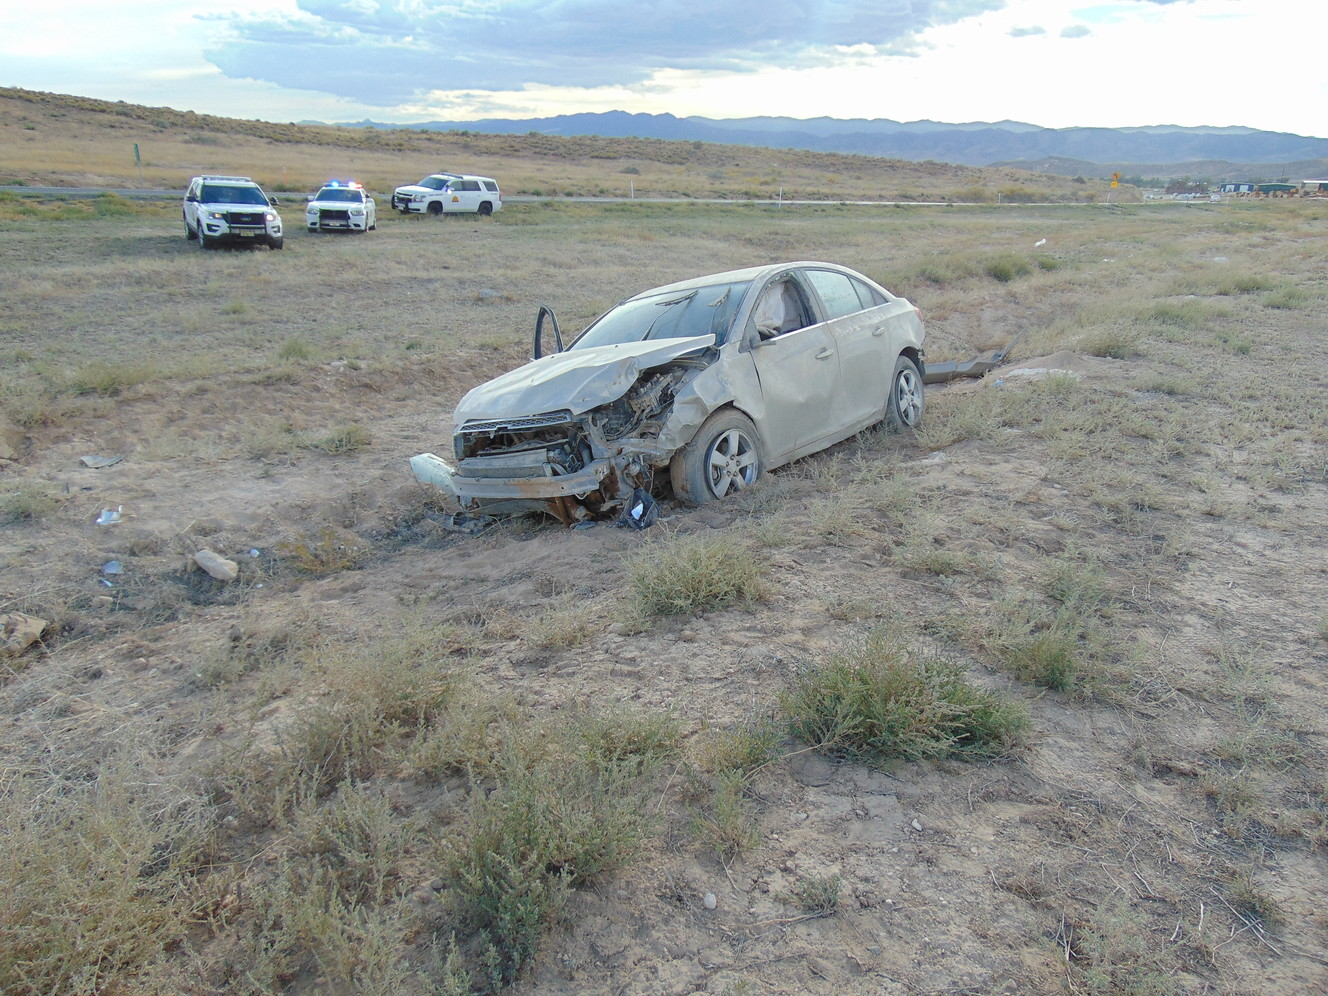 Man killed in central Utah crash may have suffered medical episode, police say